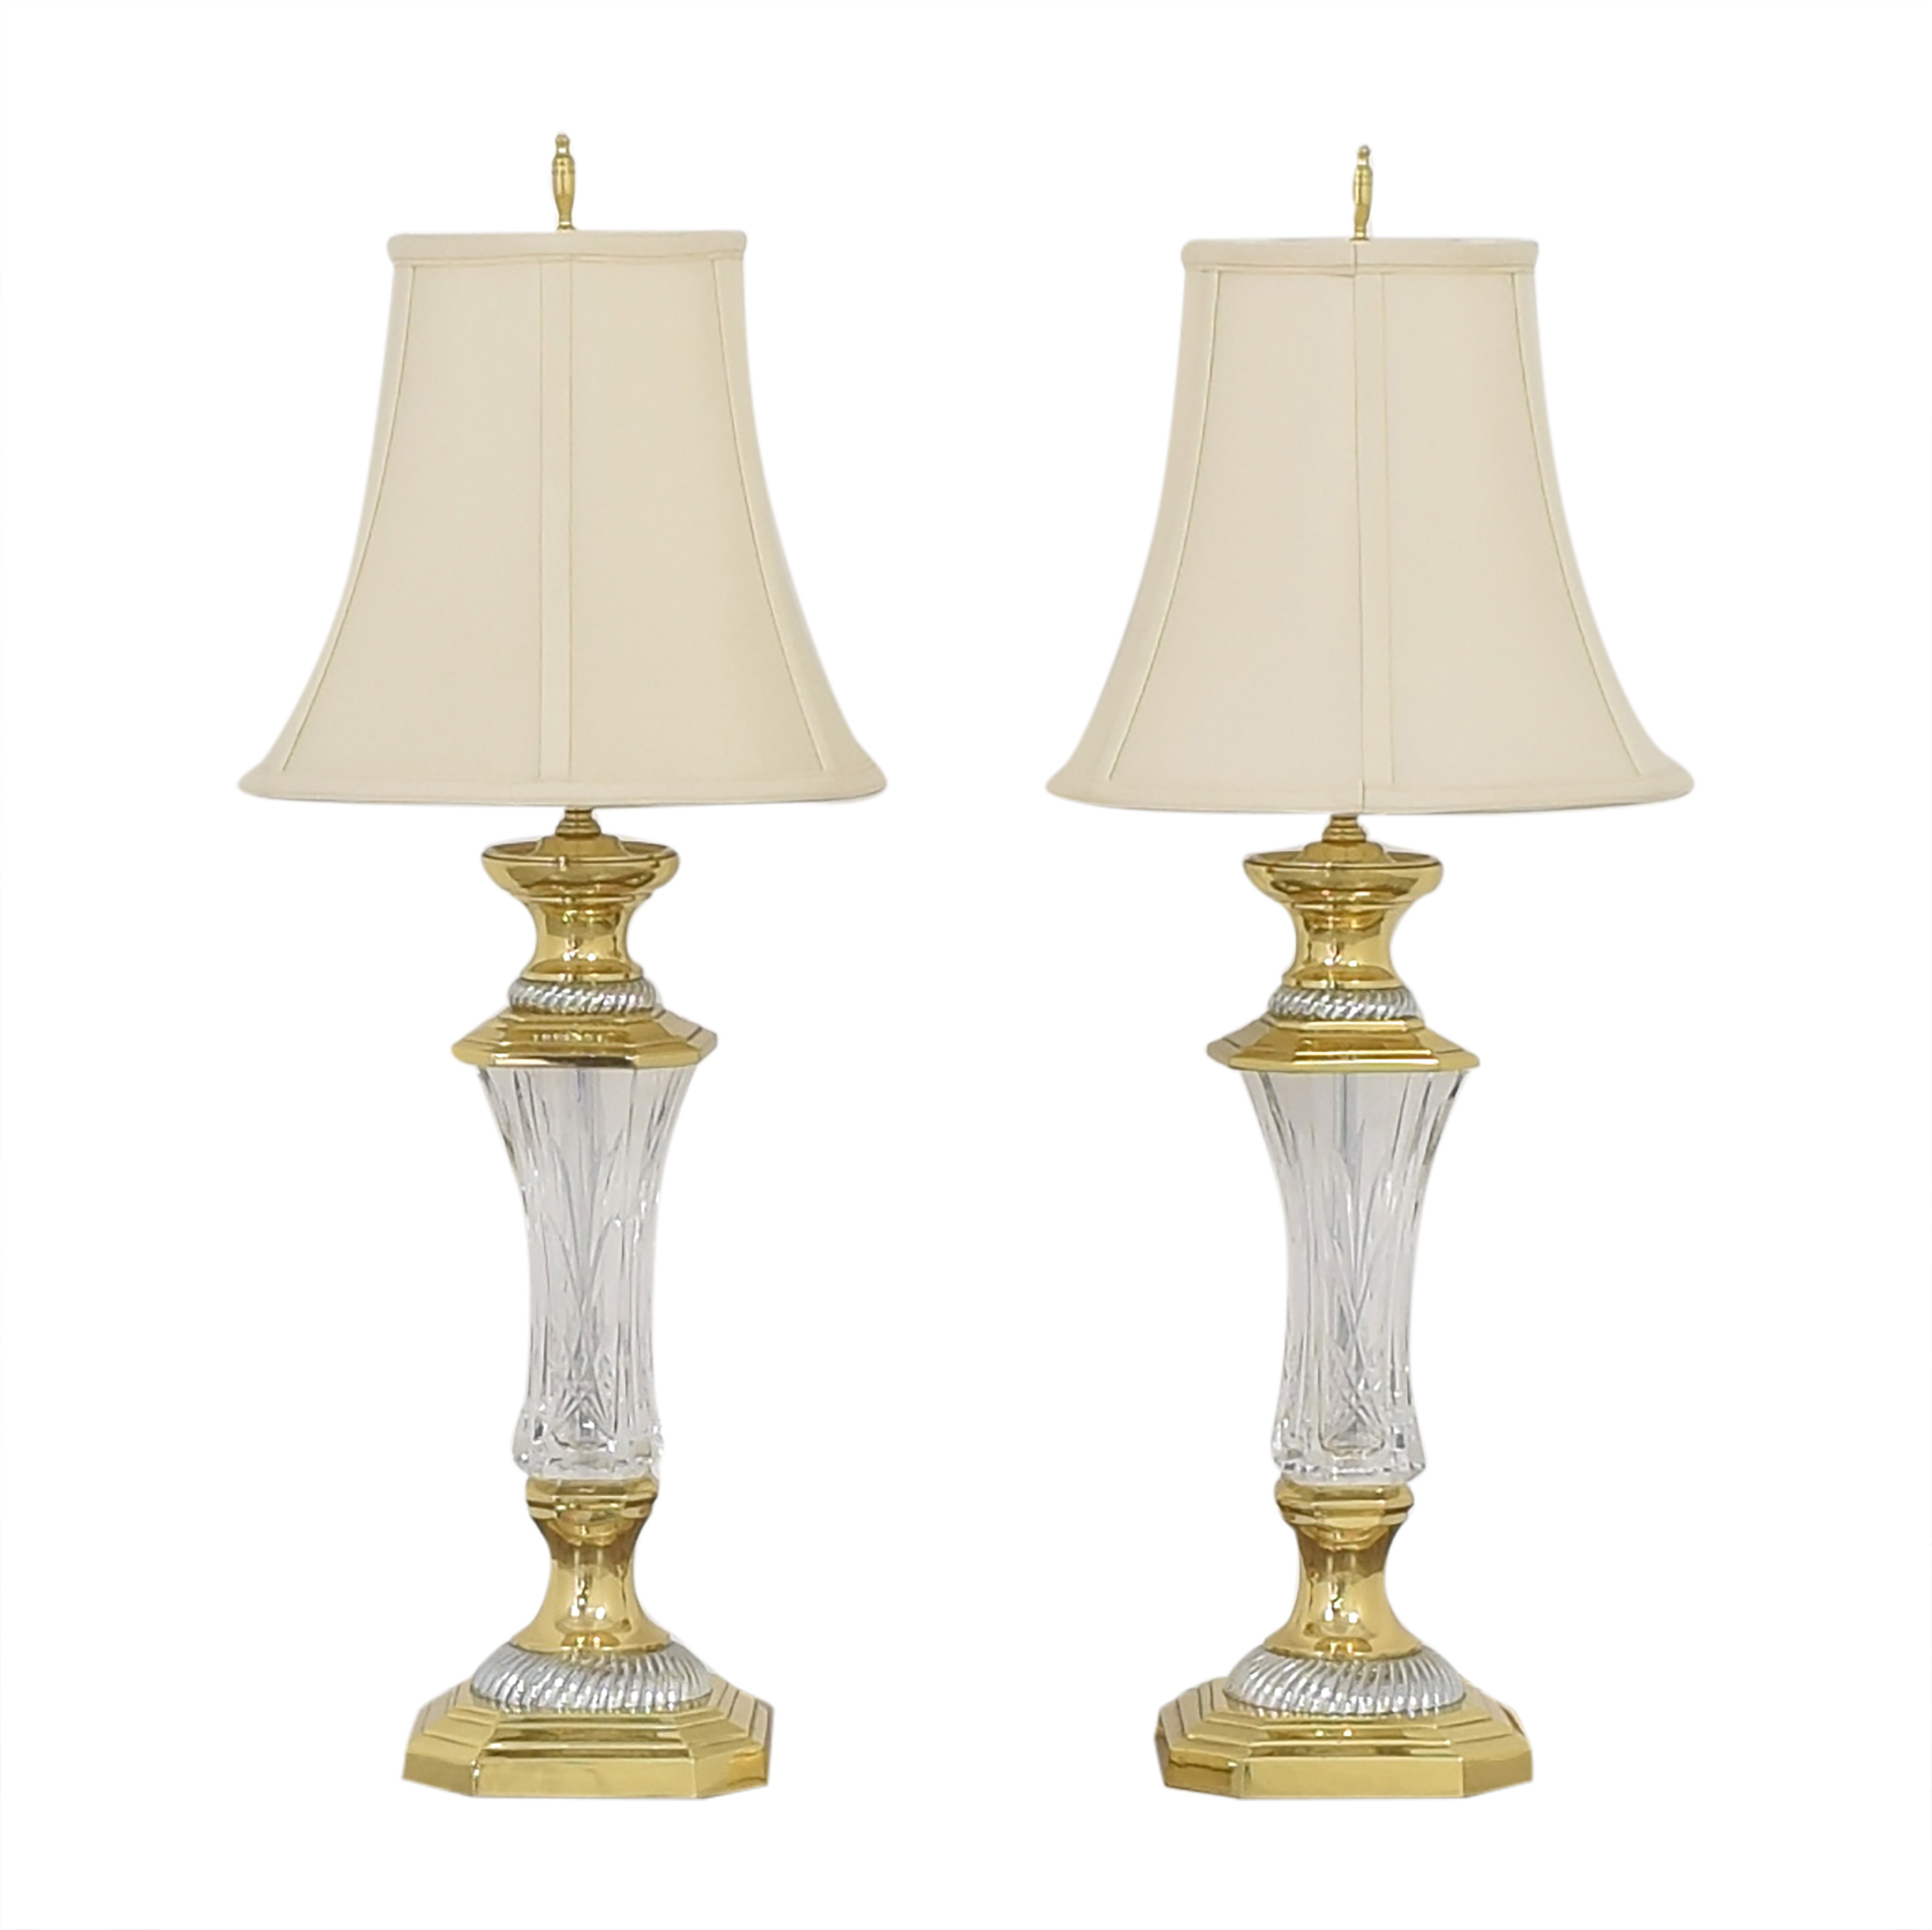 Waterford Waterford Florence Court Table Lamps dimensions